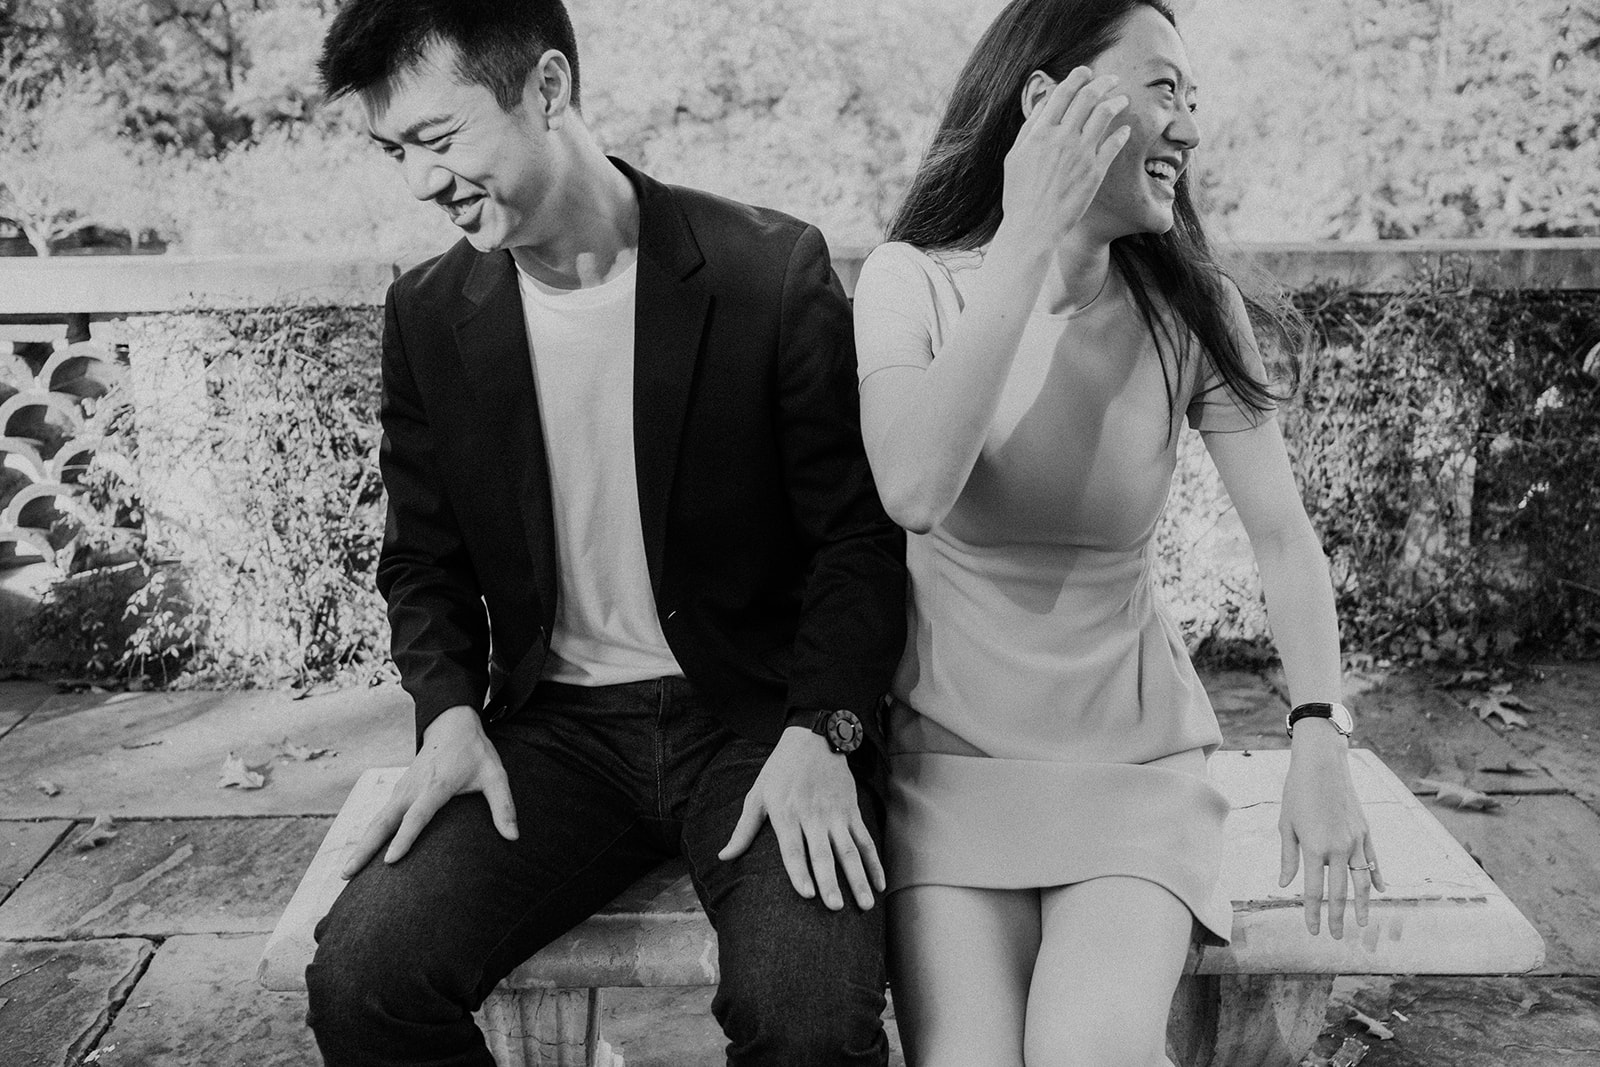 An engaged couple laughs while seated on a park bench in the gardens at Dumbarton Oaks.